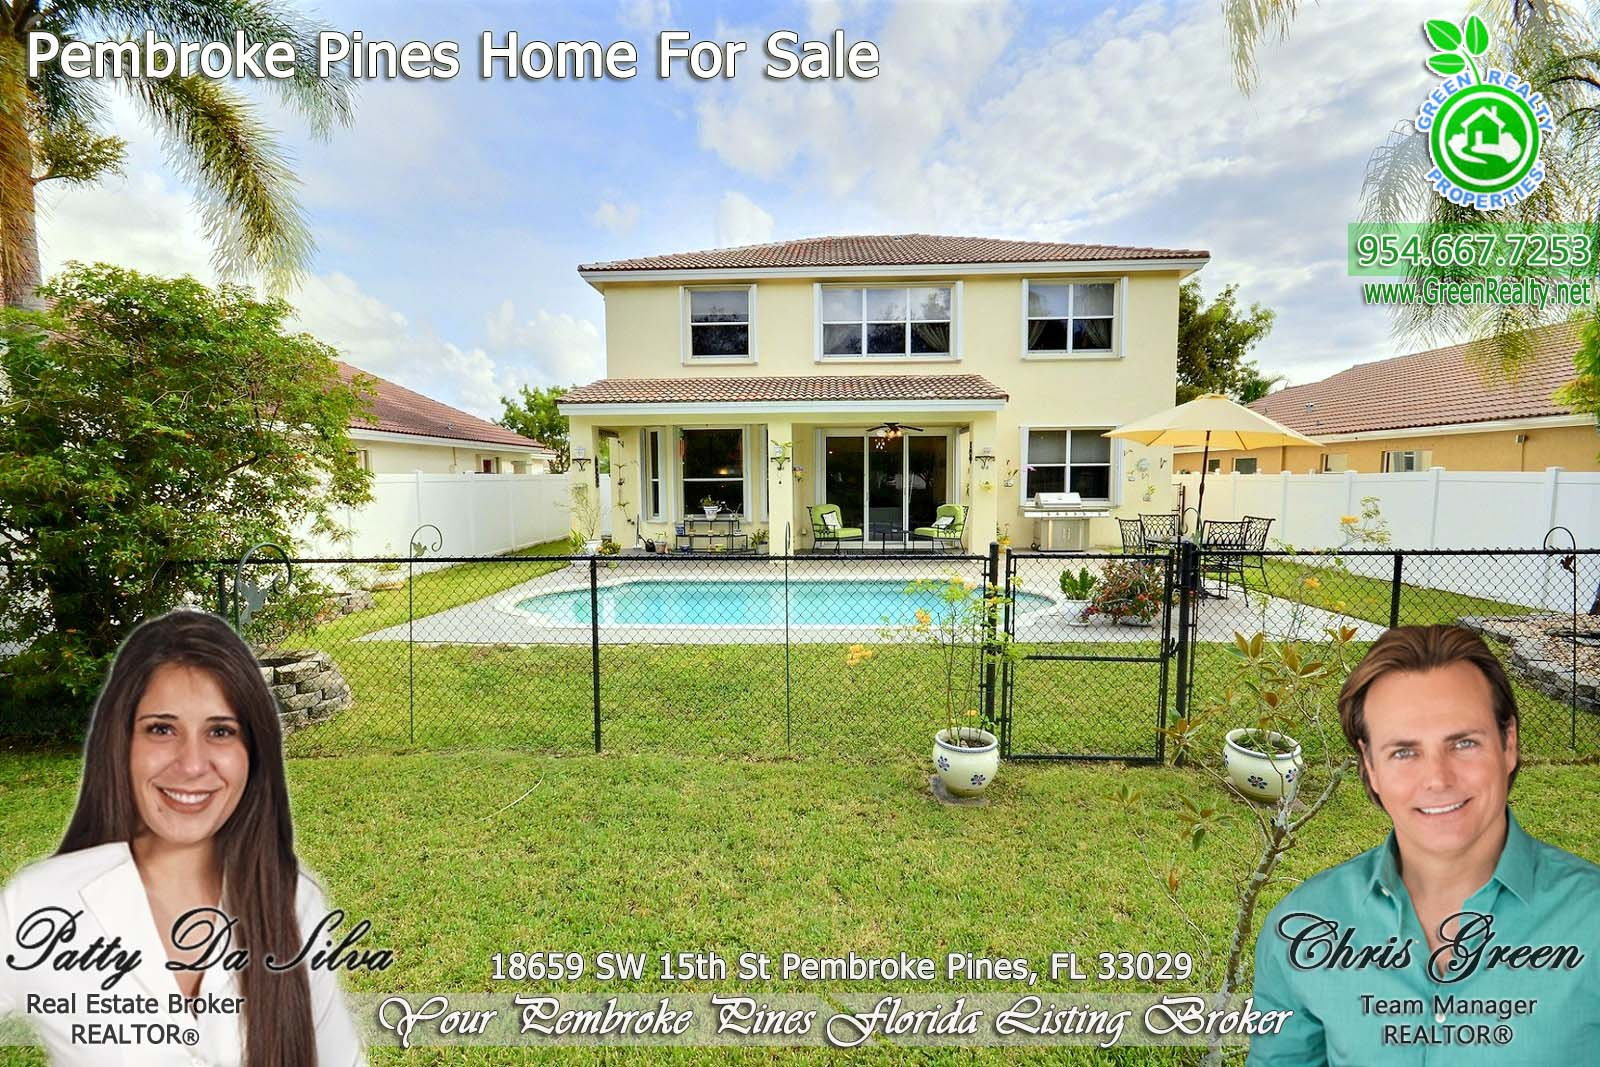 49 Homes For Sale in Pembroke Pines (3)